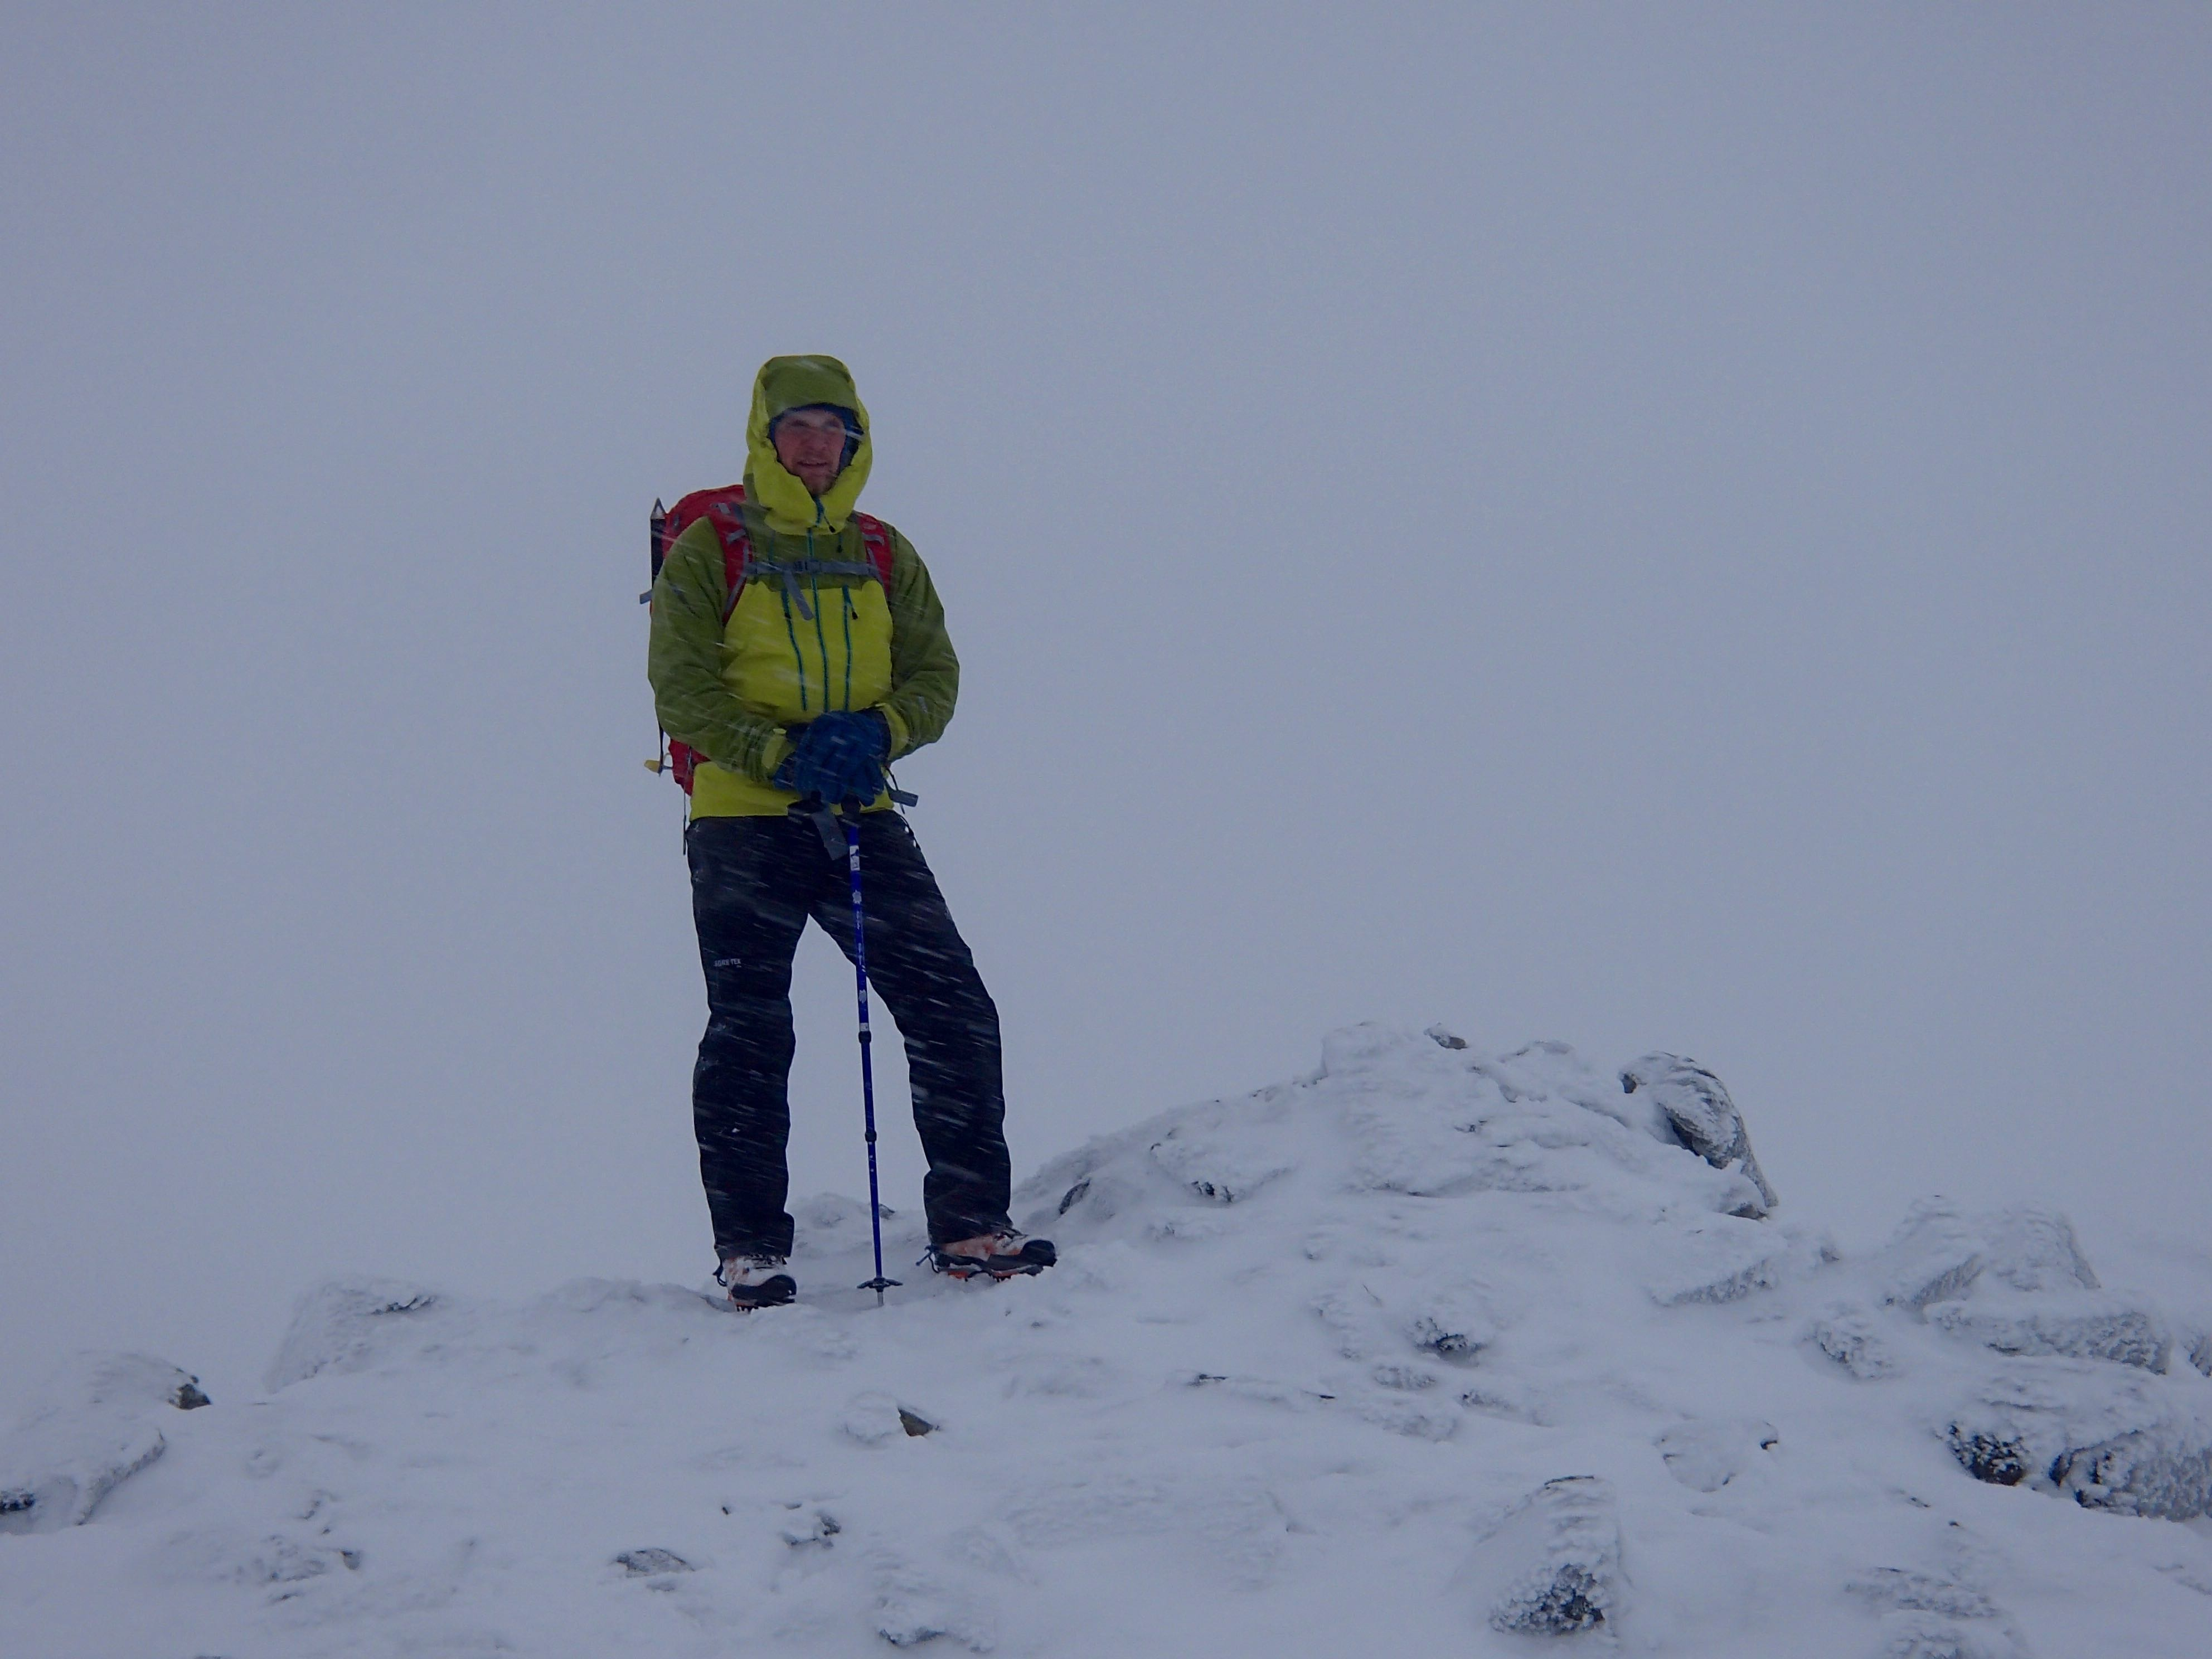 Mark from Goretex on the Summit of Meall a Bhuiridh